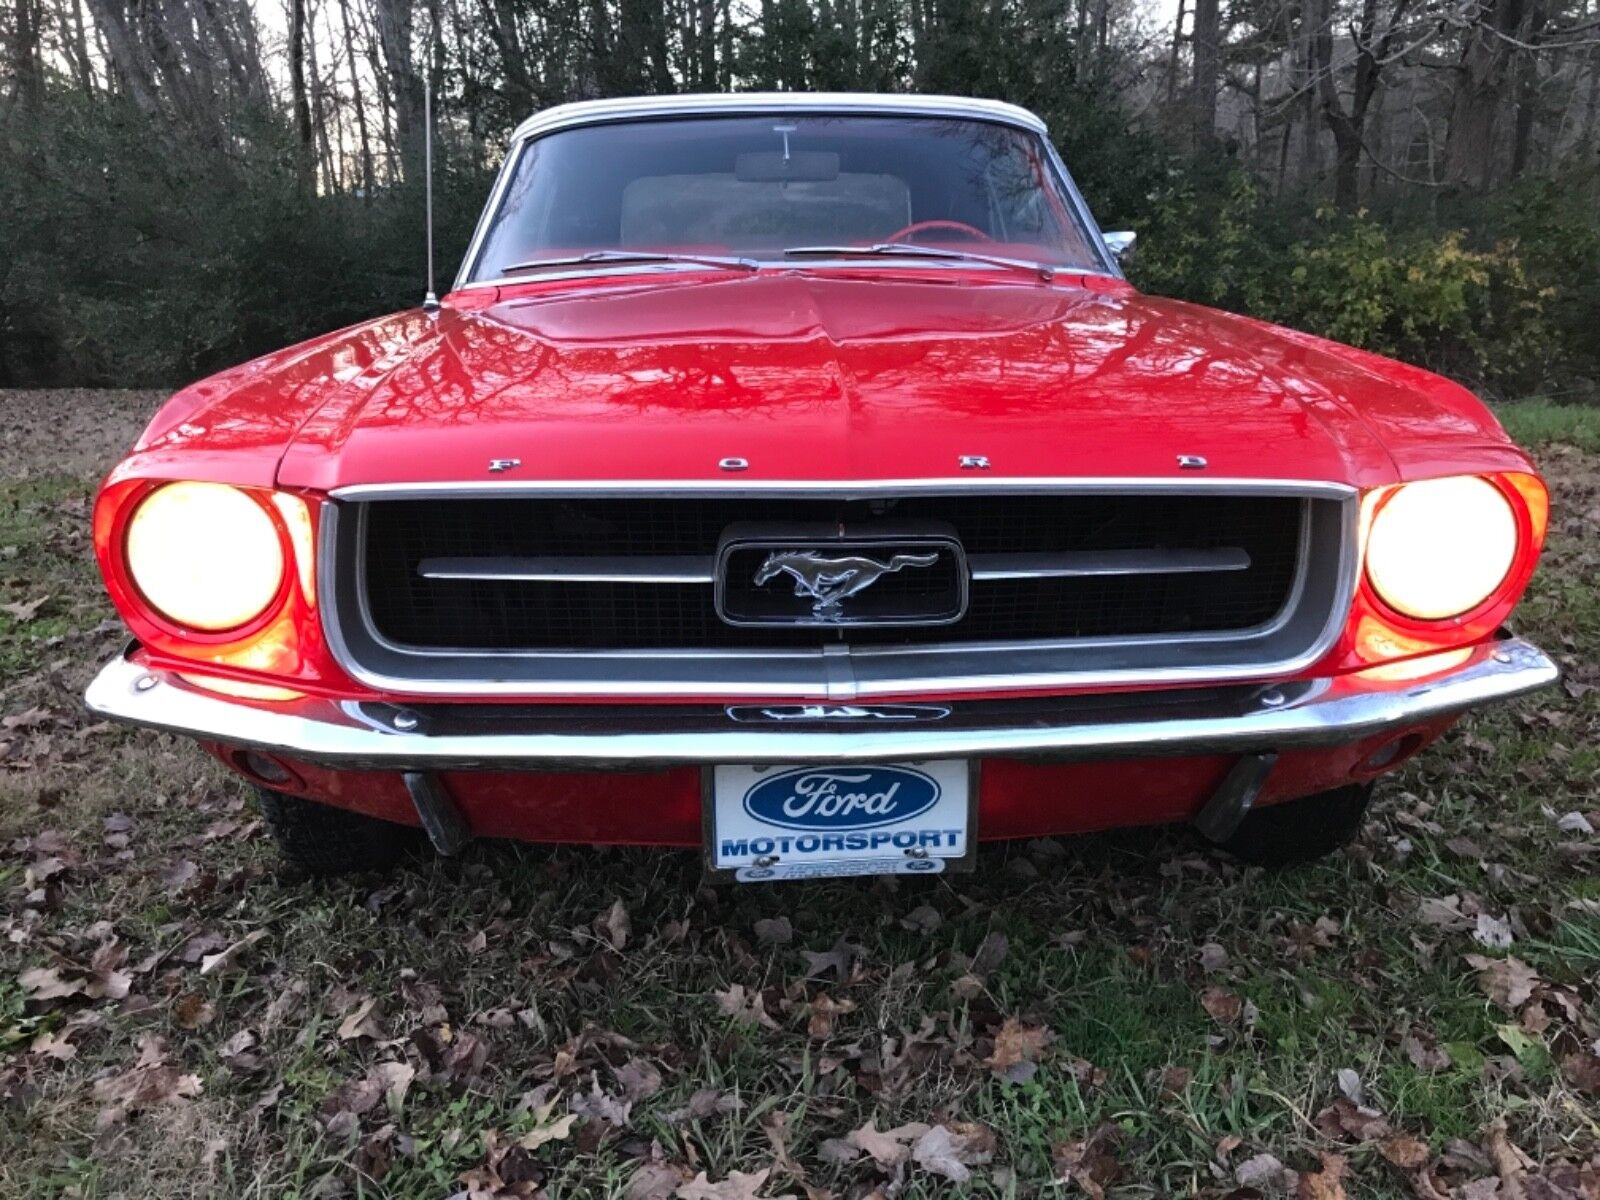 1967 ford mustang convertible fastback 1965 1966 1968 1969 1970 v8 boss Mach 1